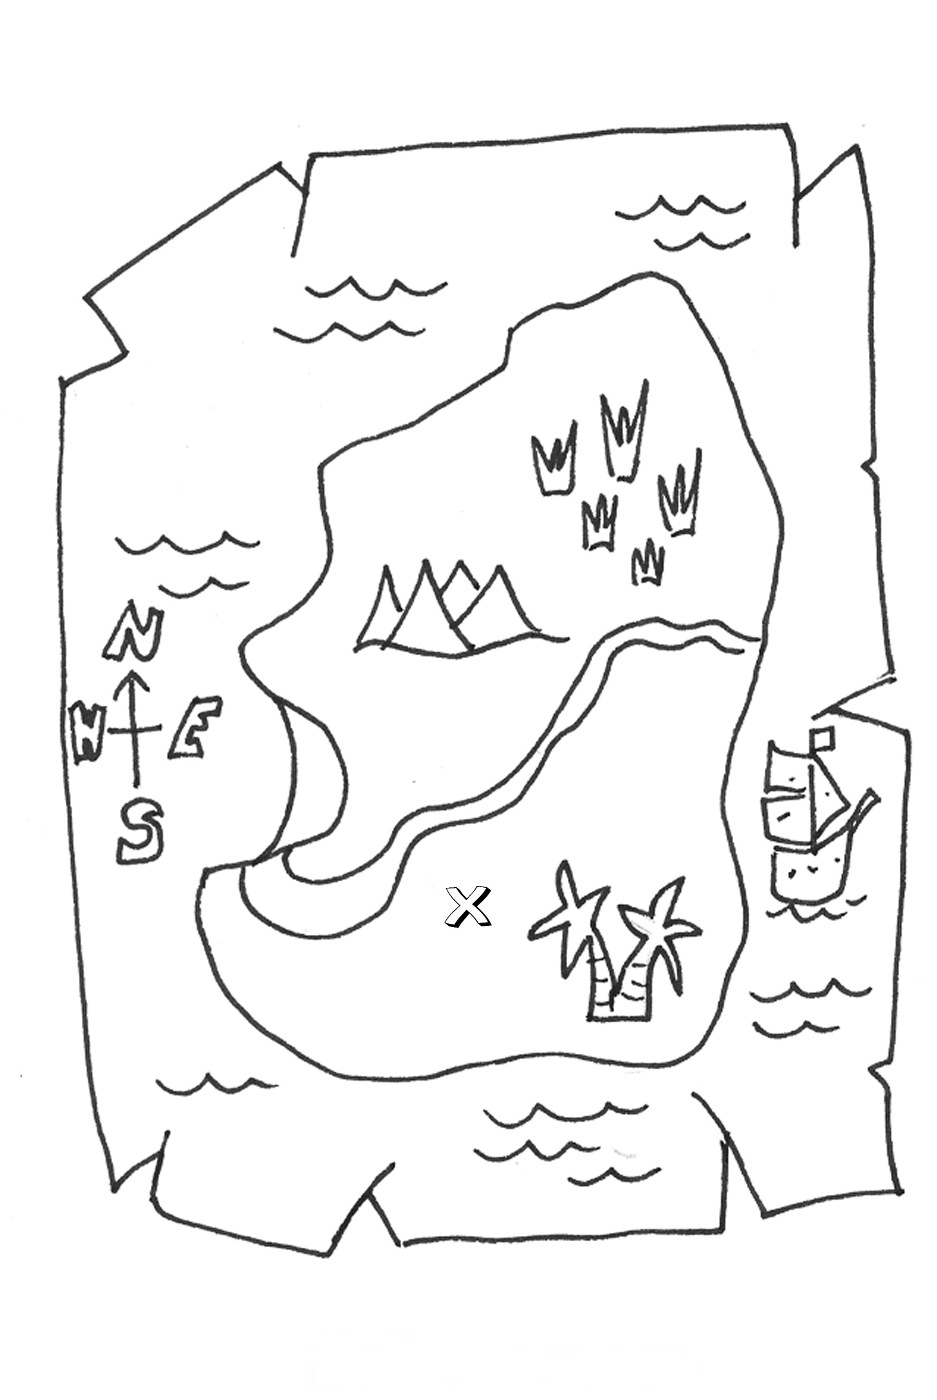 maps coloring pages teasure map coloring page only coloring pages